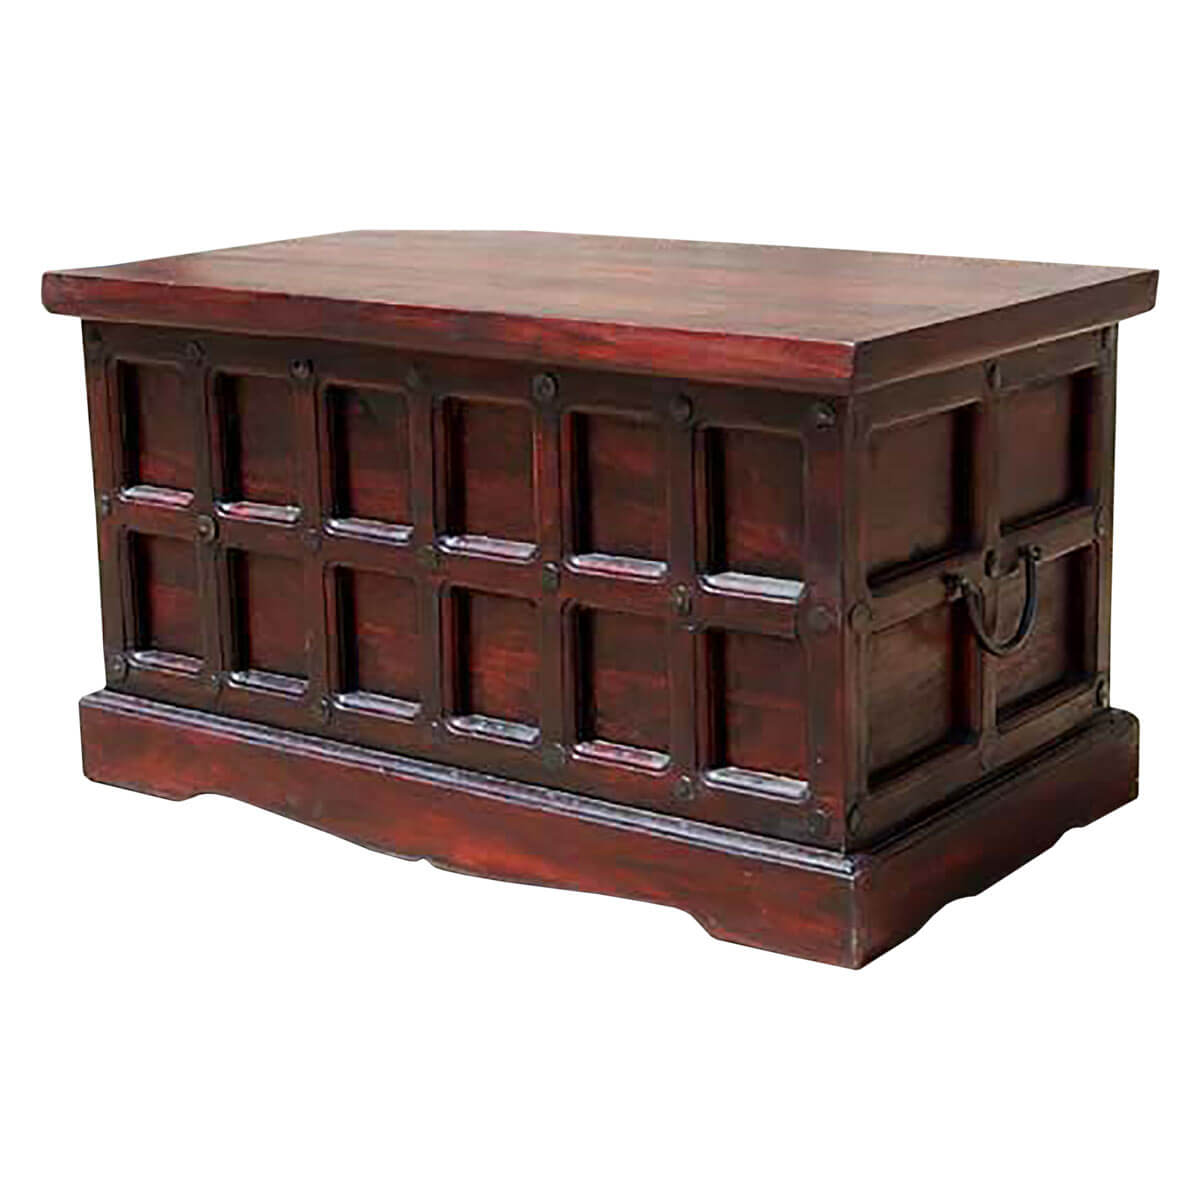 Hopper Storage Coffee Table: Beaufort Solid Wood Storage Chest Trunk Box Coffee Table